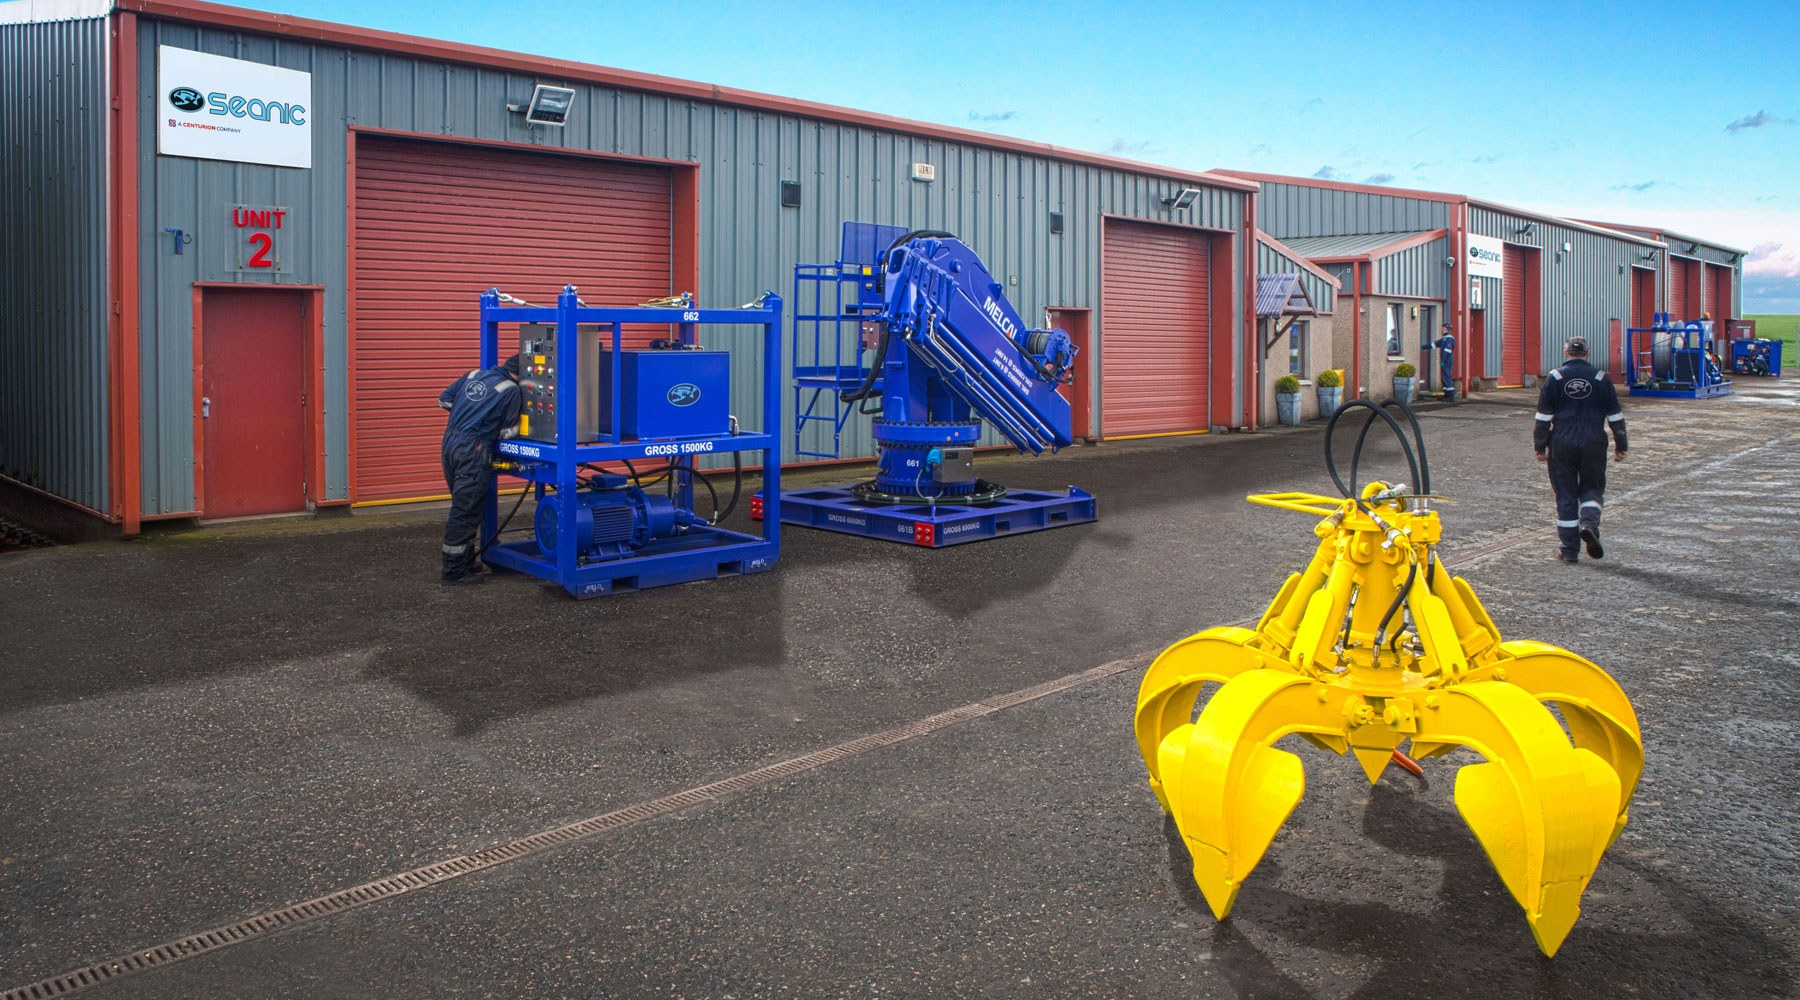 Seanic equipment in a work yard to be used for offshore decommissioning